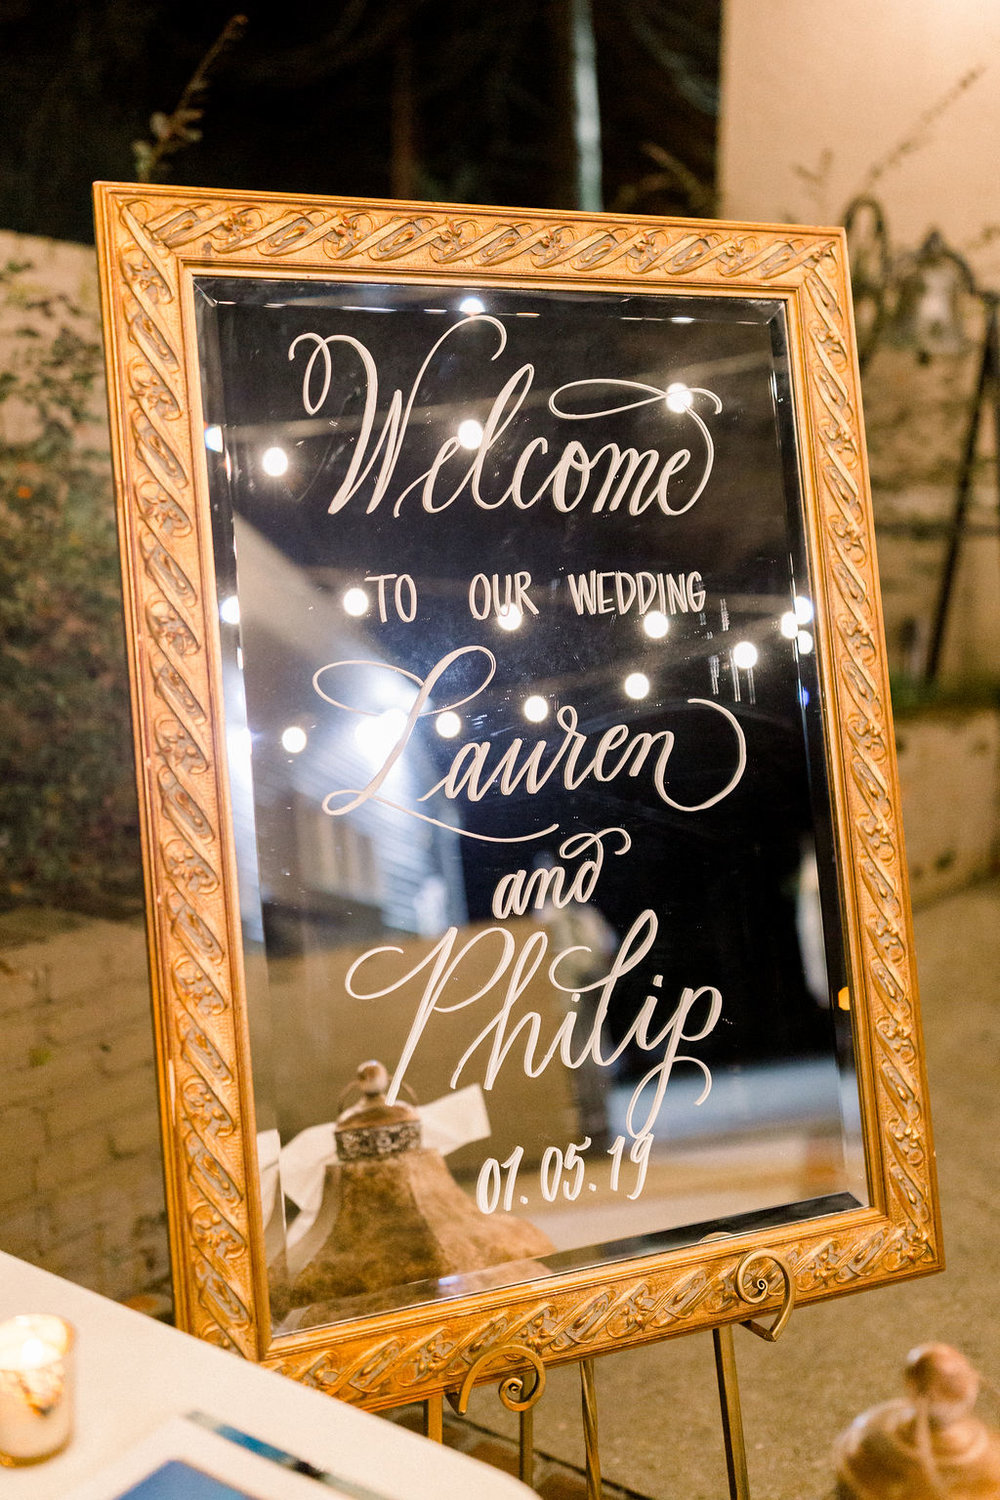 CarolynnSeibertPhotography--Philip&Lauren'sWeddingIMG_6453.jpg